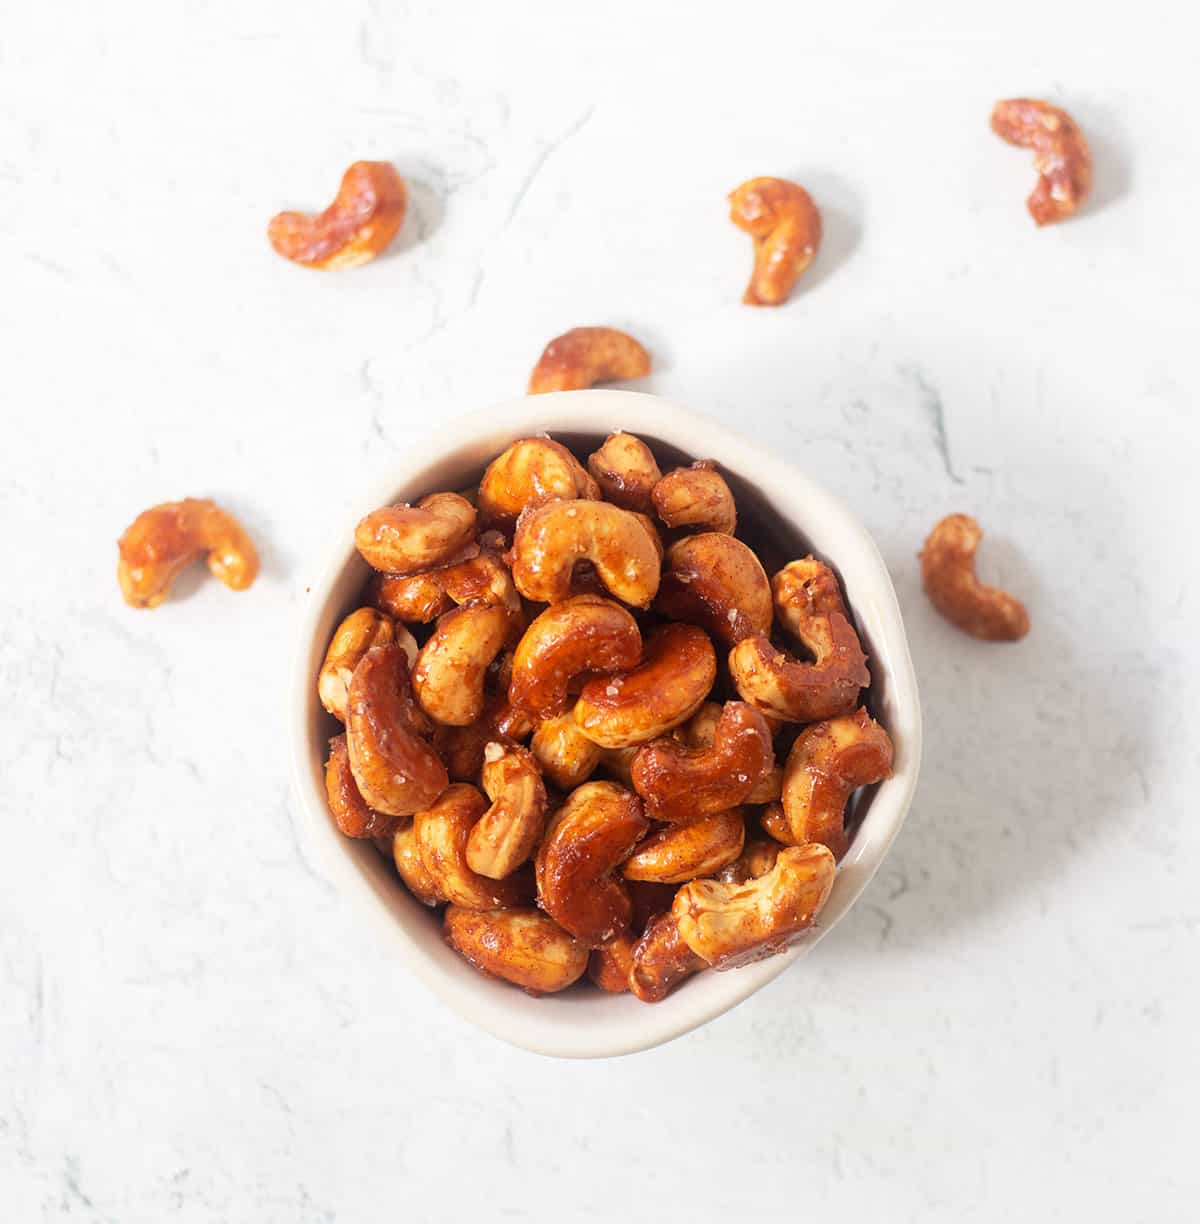 Honey roasted cashews in a white bowl with some of the cashews beside the bowl.